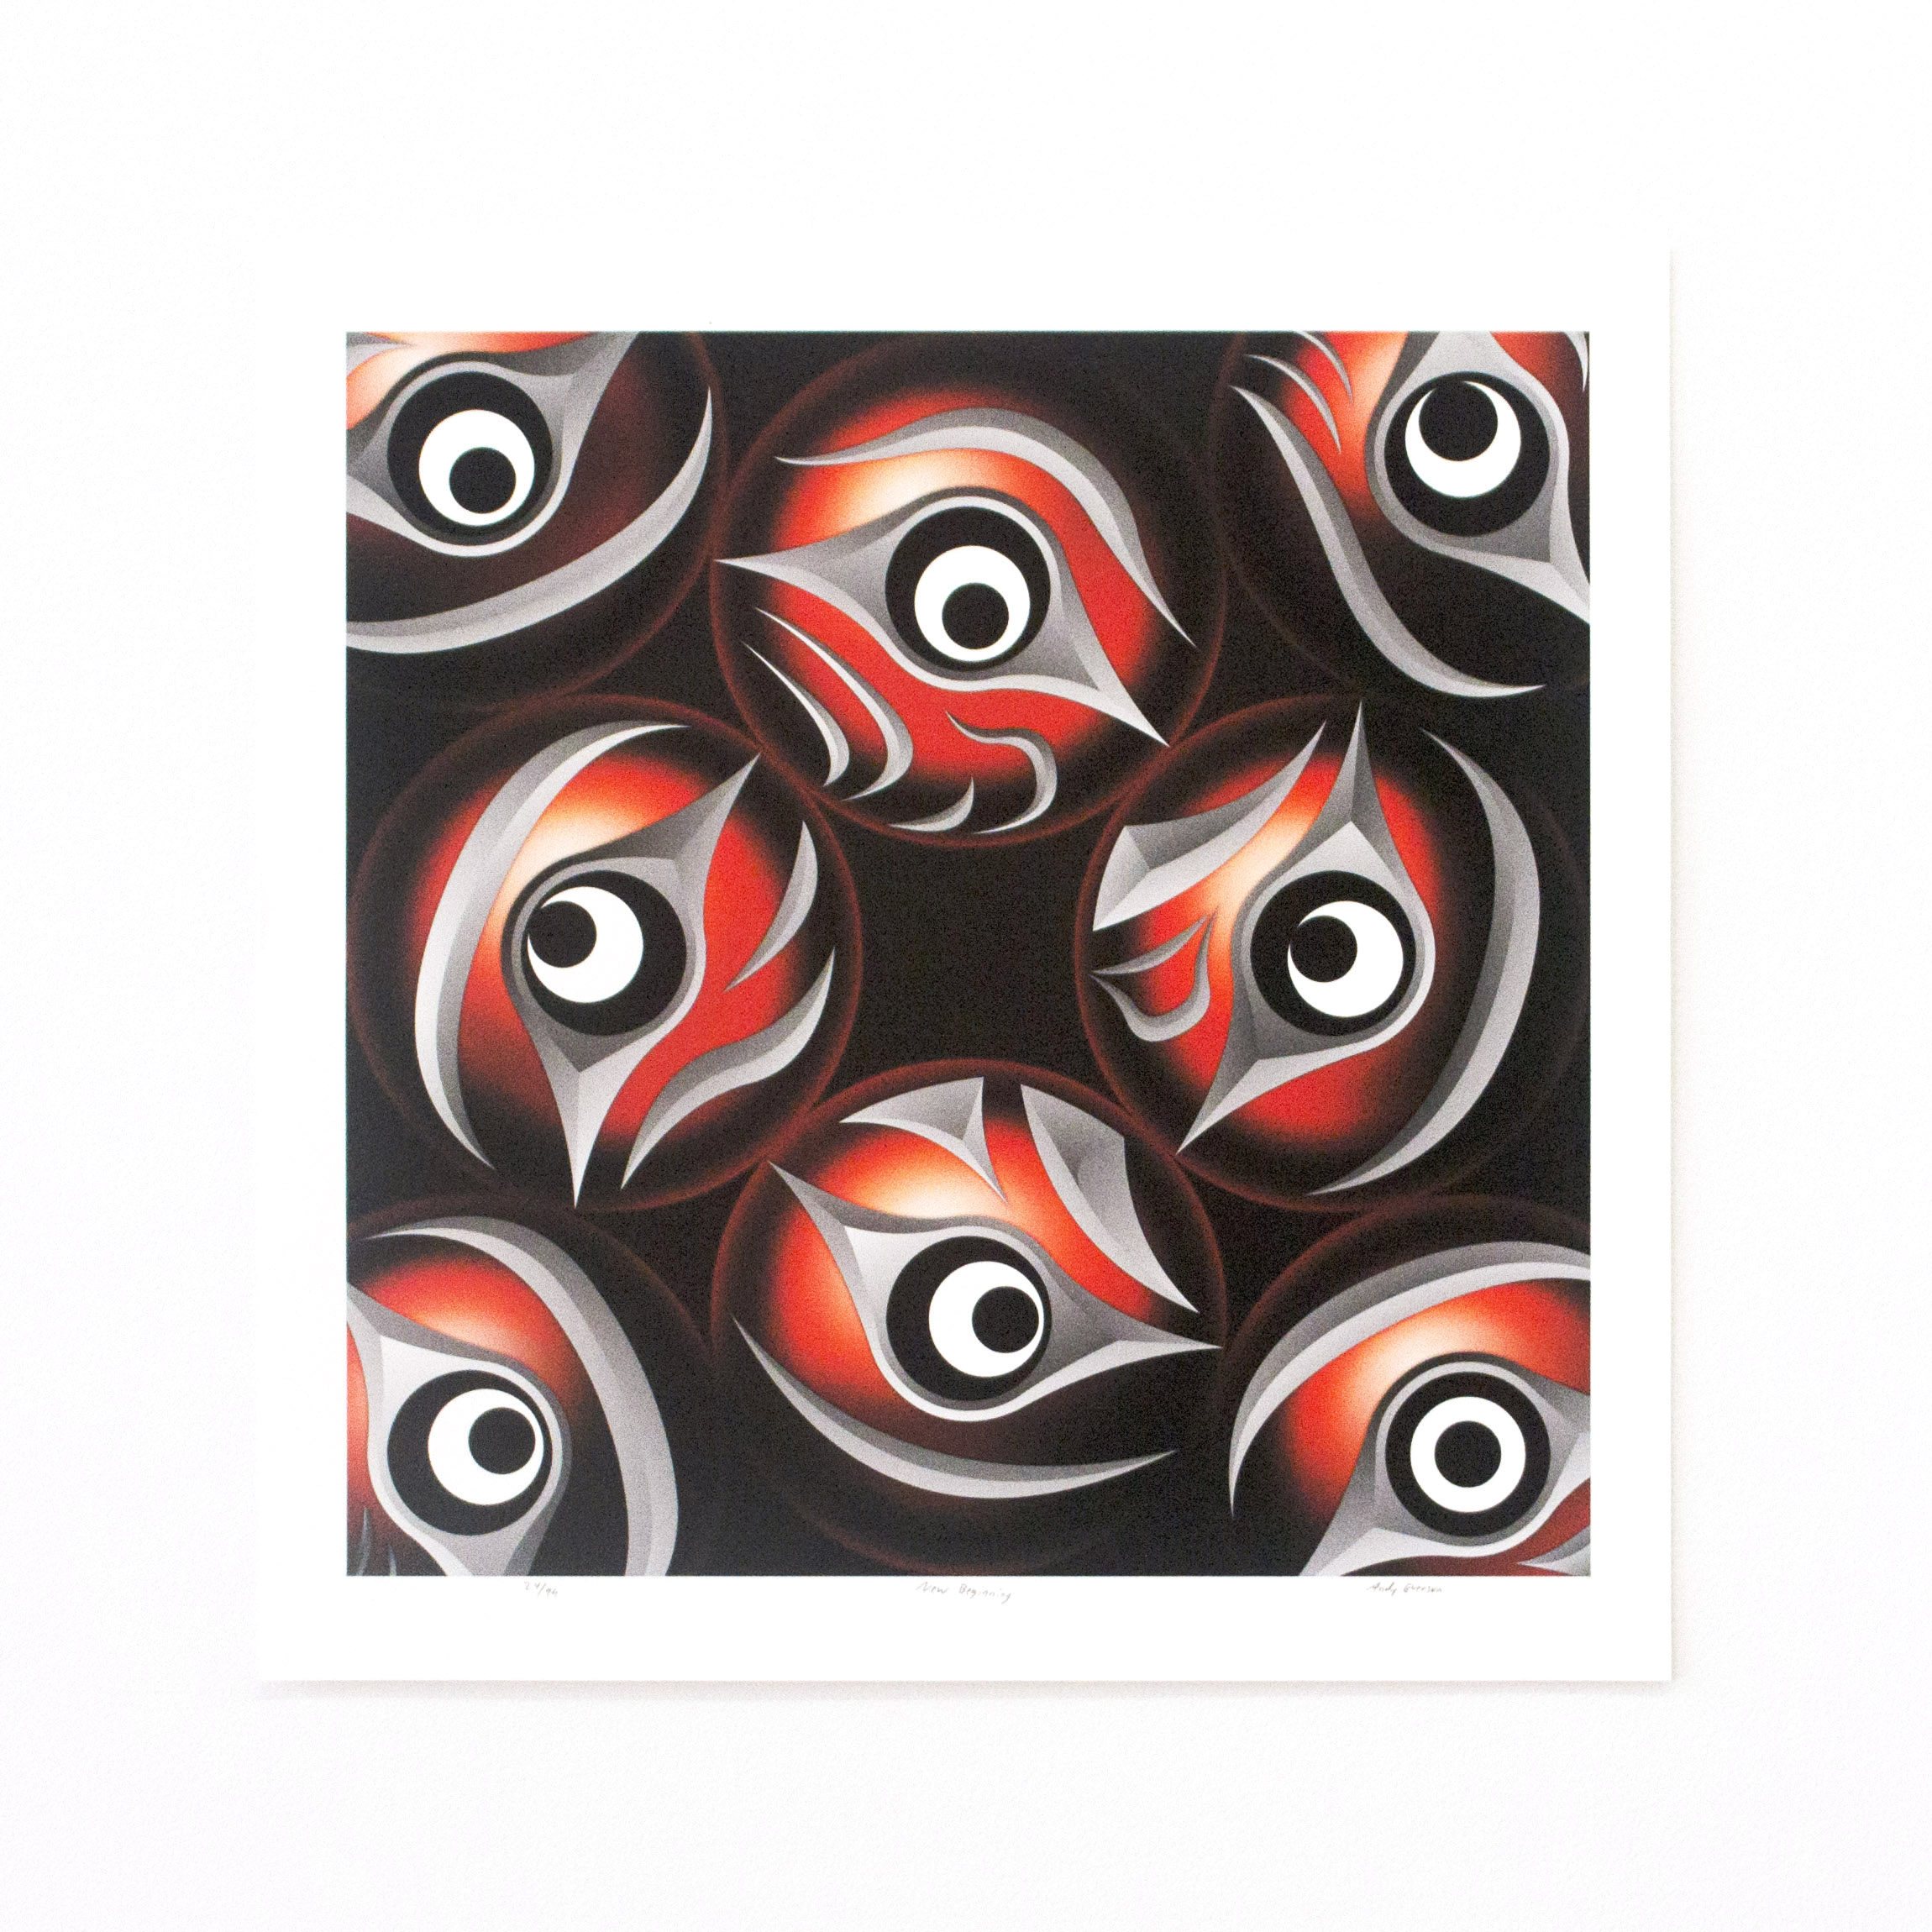 "New Beginning, Andy Everson (Salish & Kwakwaka'wakw), Giclee ed. /99, 17"" x 17"", $200 unframed"